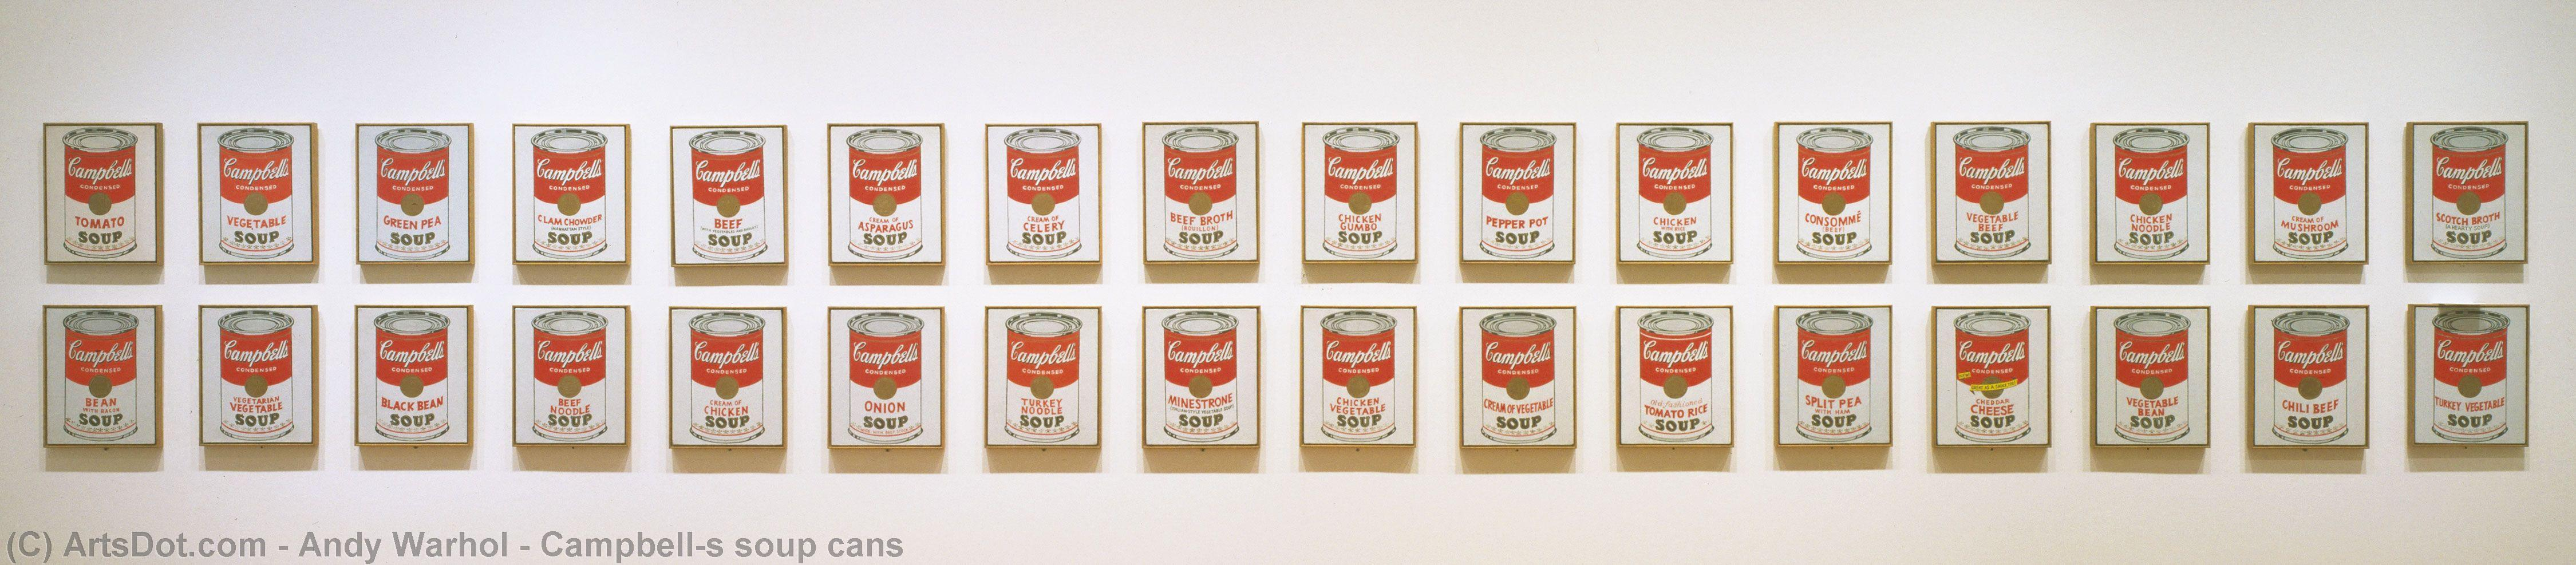 Wikioo.org - The Encyclopedia of Fine Arts - Painting, Artwork by Andy Warhol - Campbell's soup cans